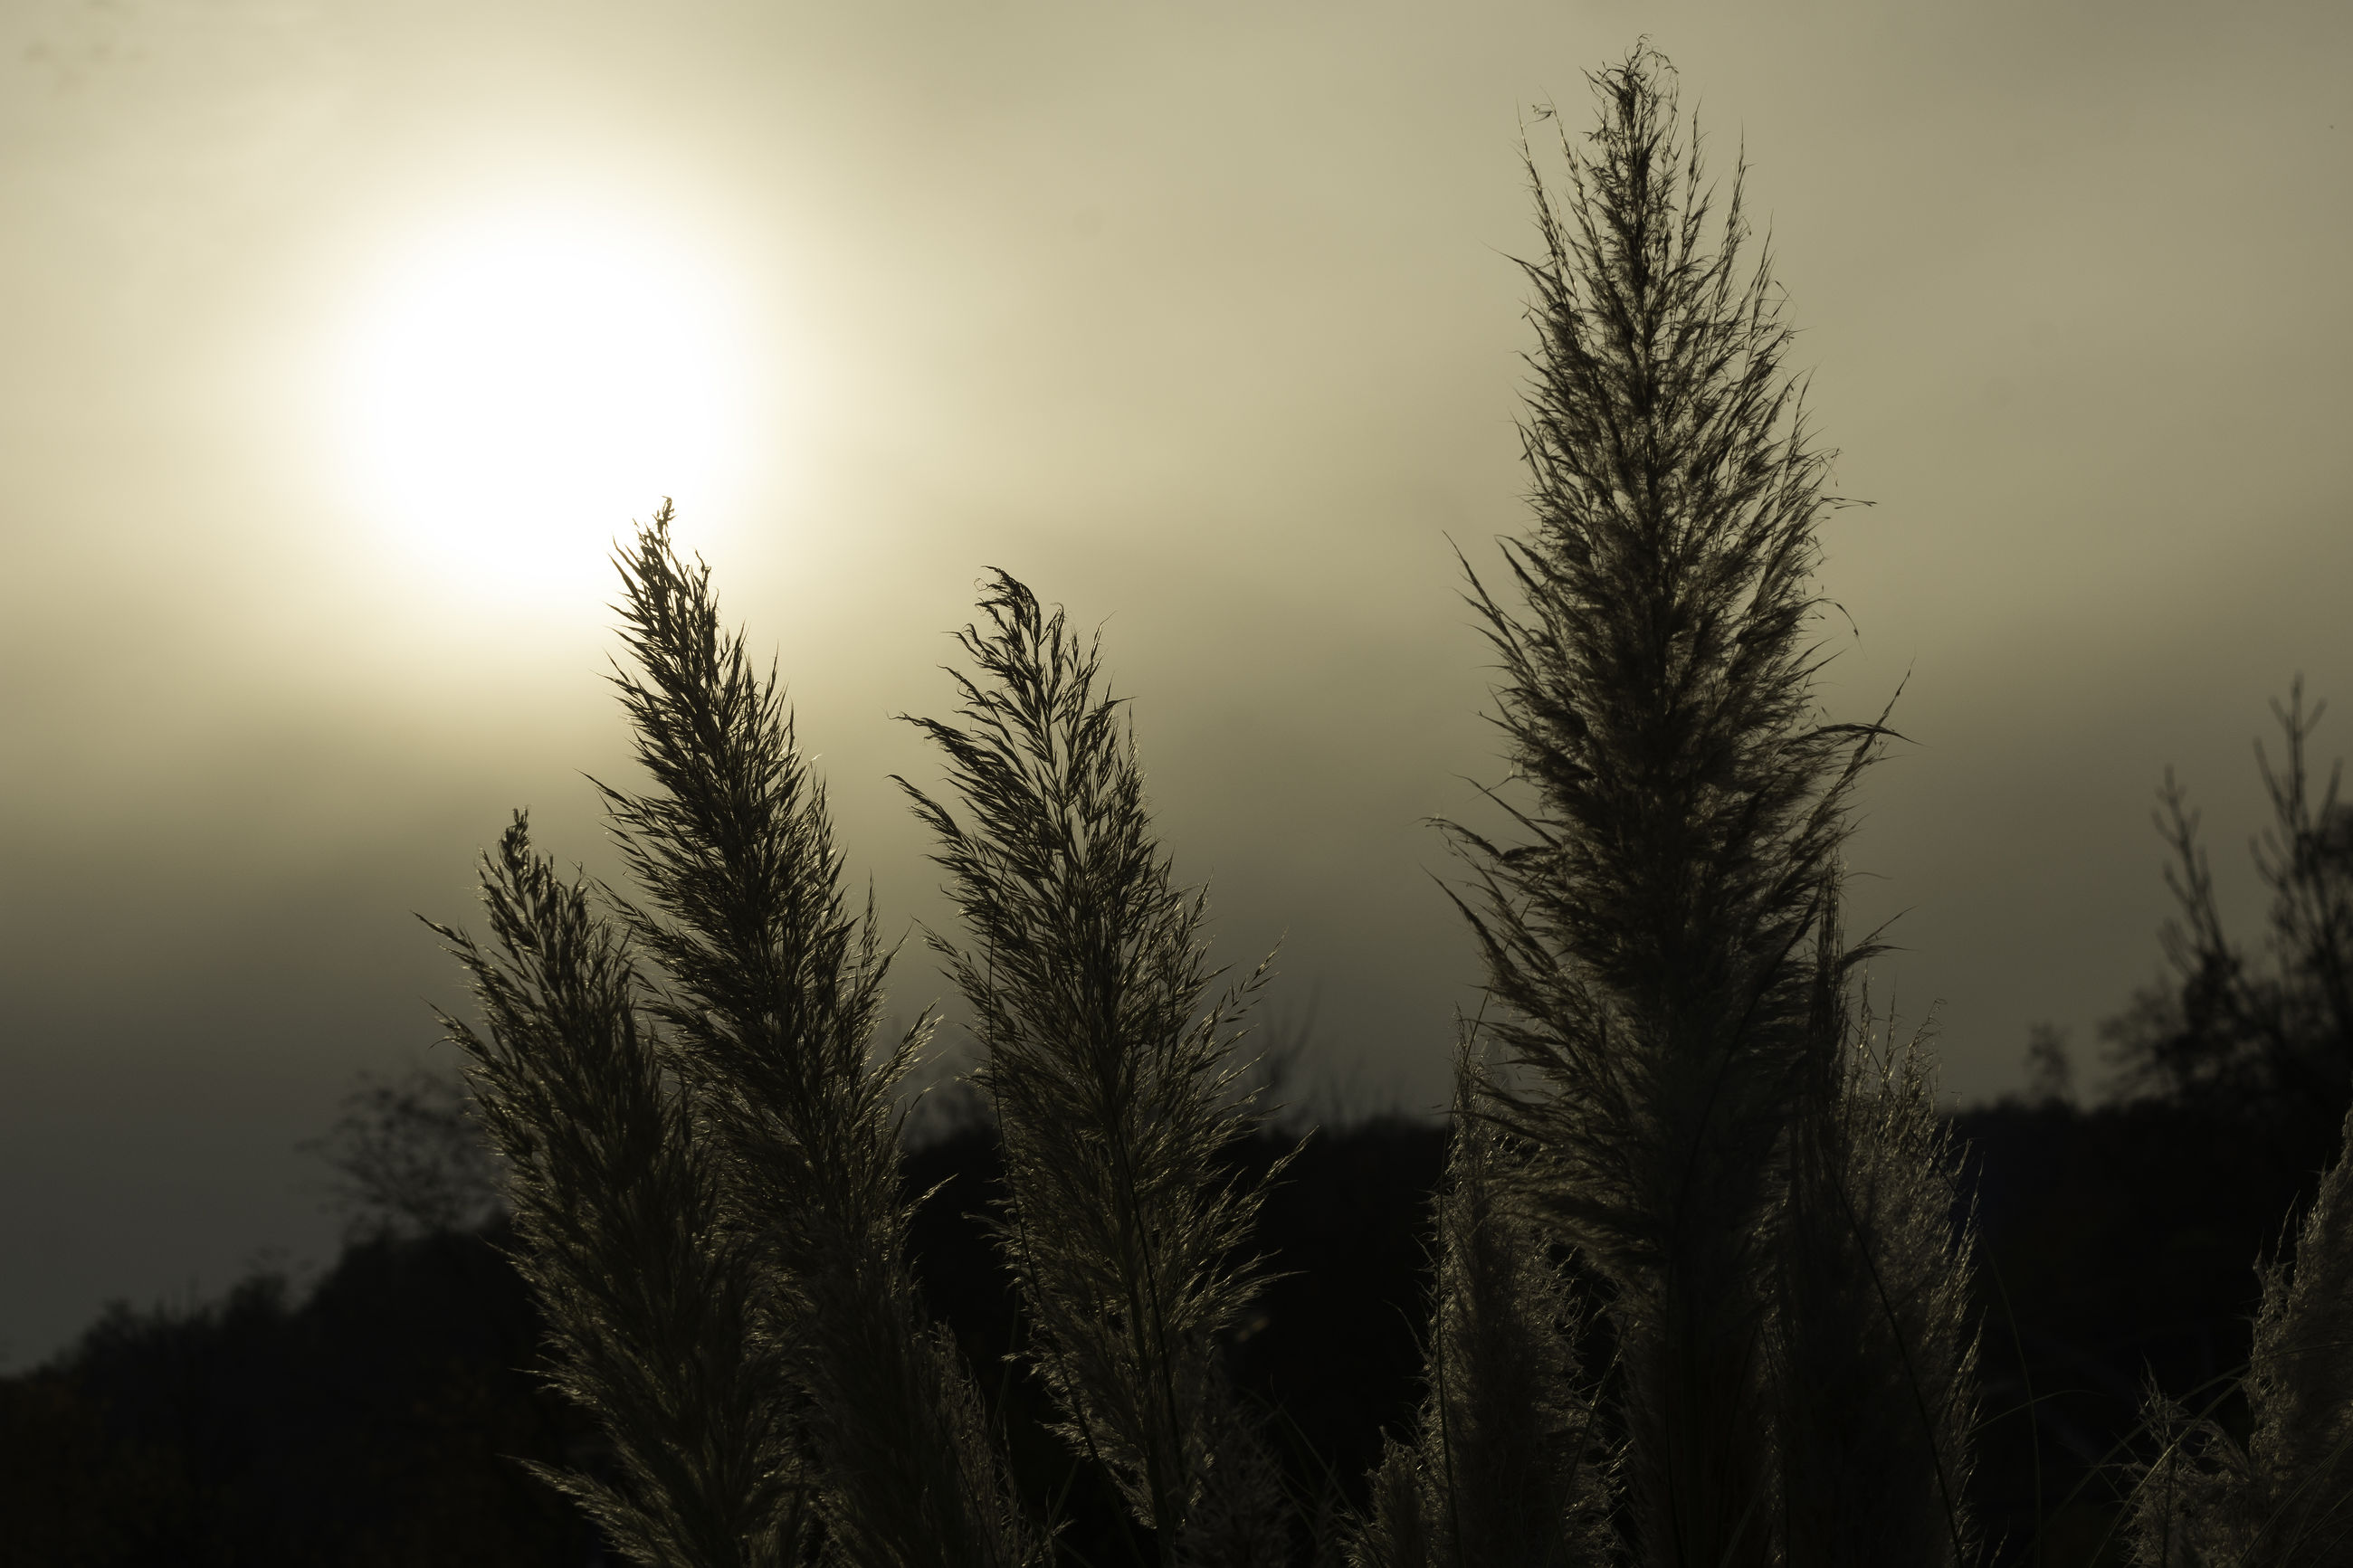 growth, tree, nature, beauty in nature, no people, tranquility, plant, outdoors, sky, tranquil scene, scenics, close-up, sun, day